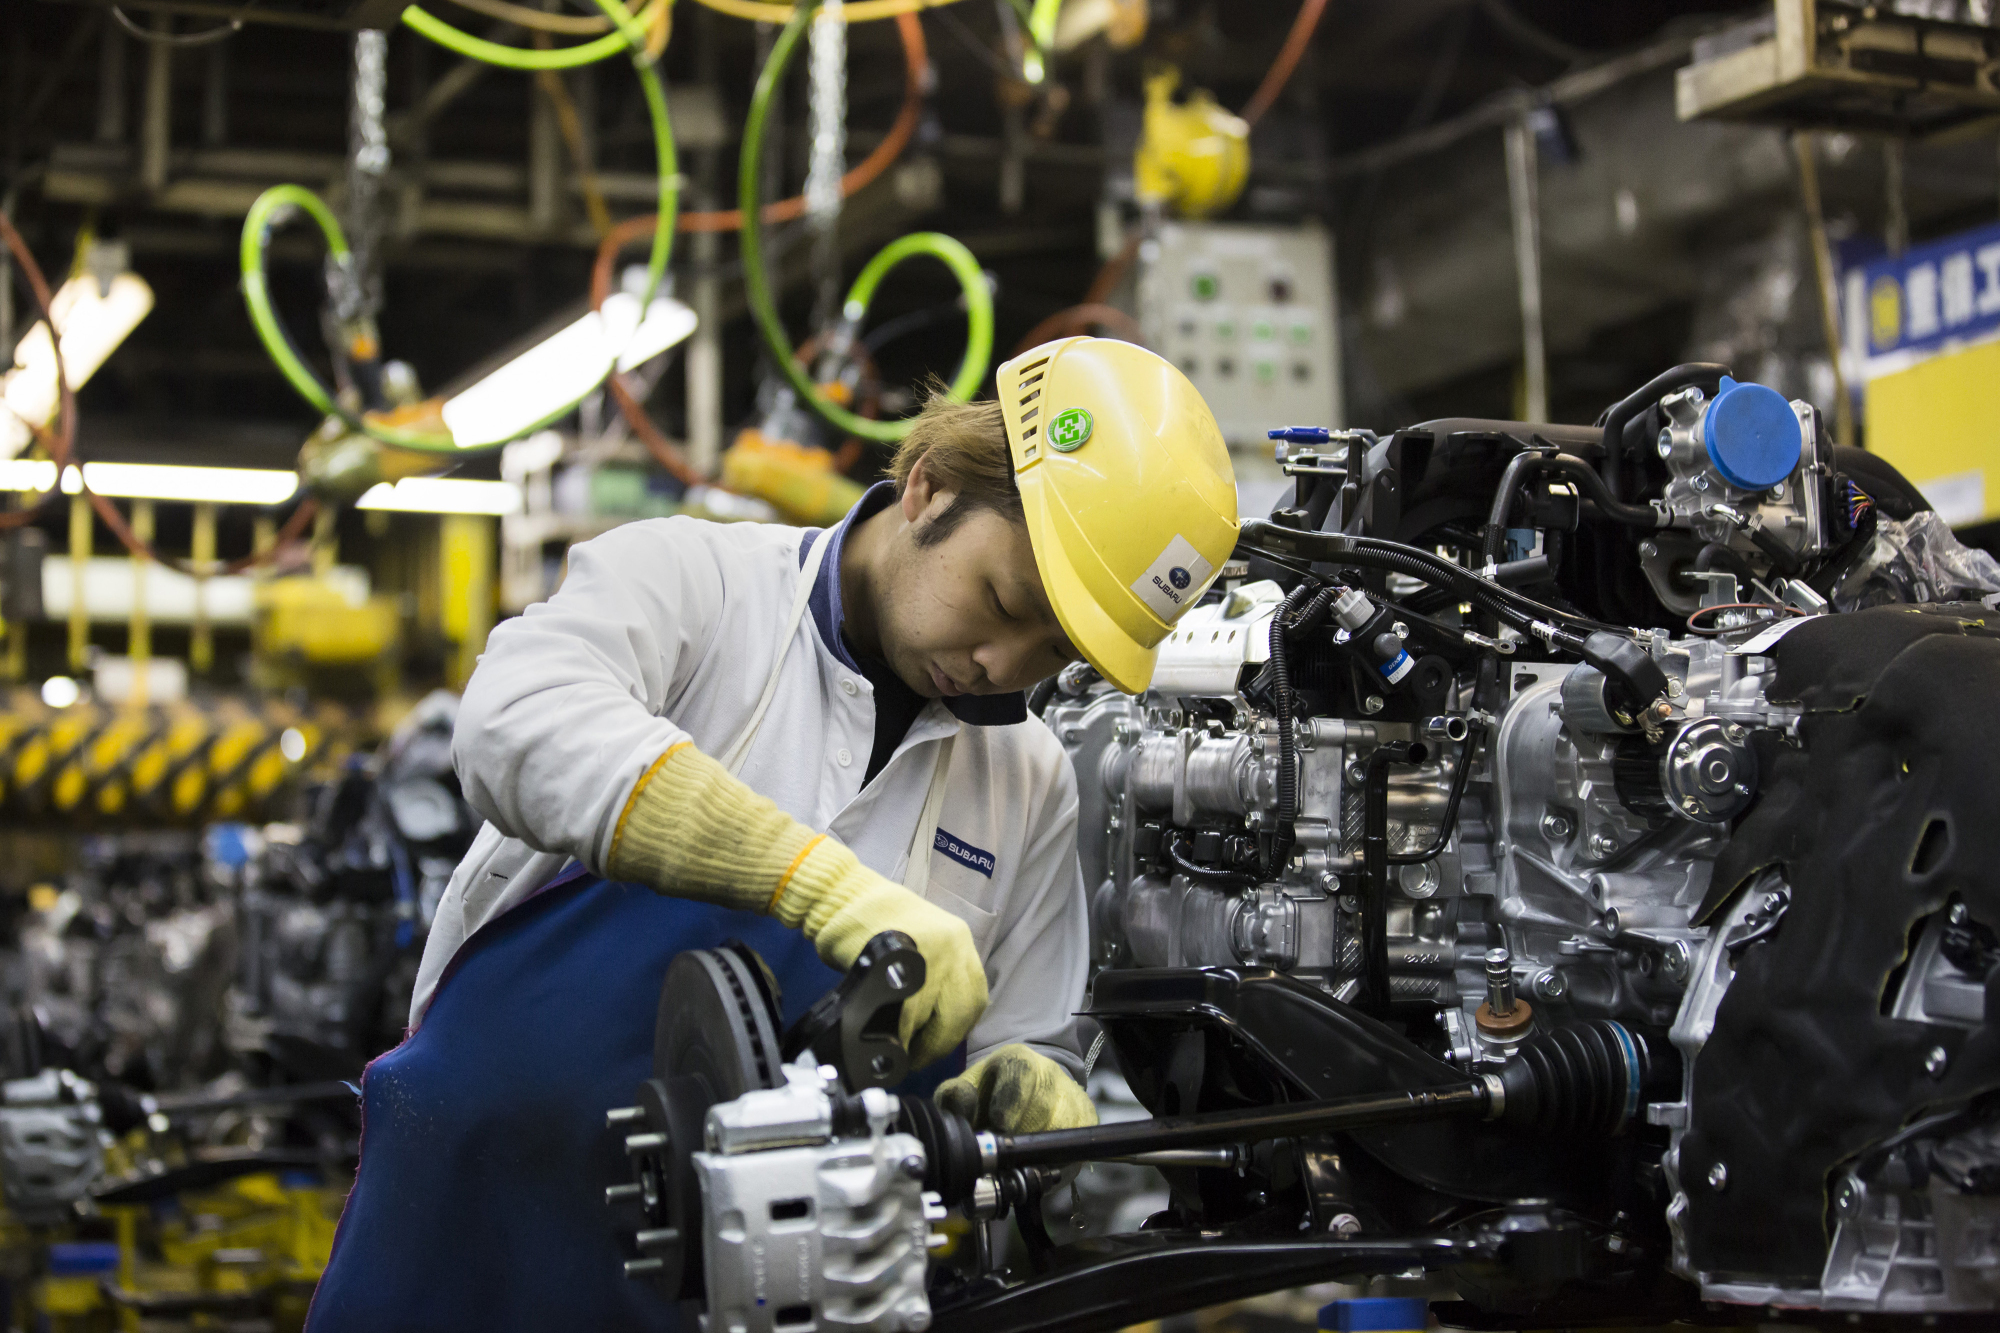 A worker assembles an engine on a production line in Ota, Gunma Prefecture, in March 2017. Japan saw core private-sector machinery orders fall in June for the third straight month. | BLOOMBERG